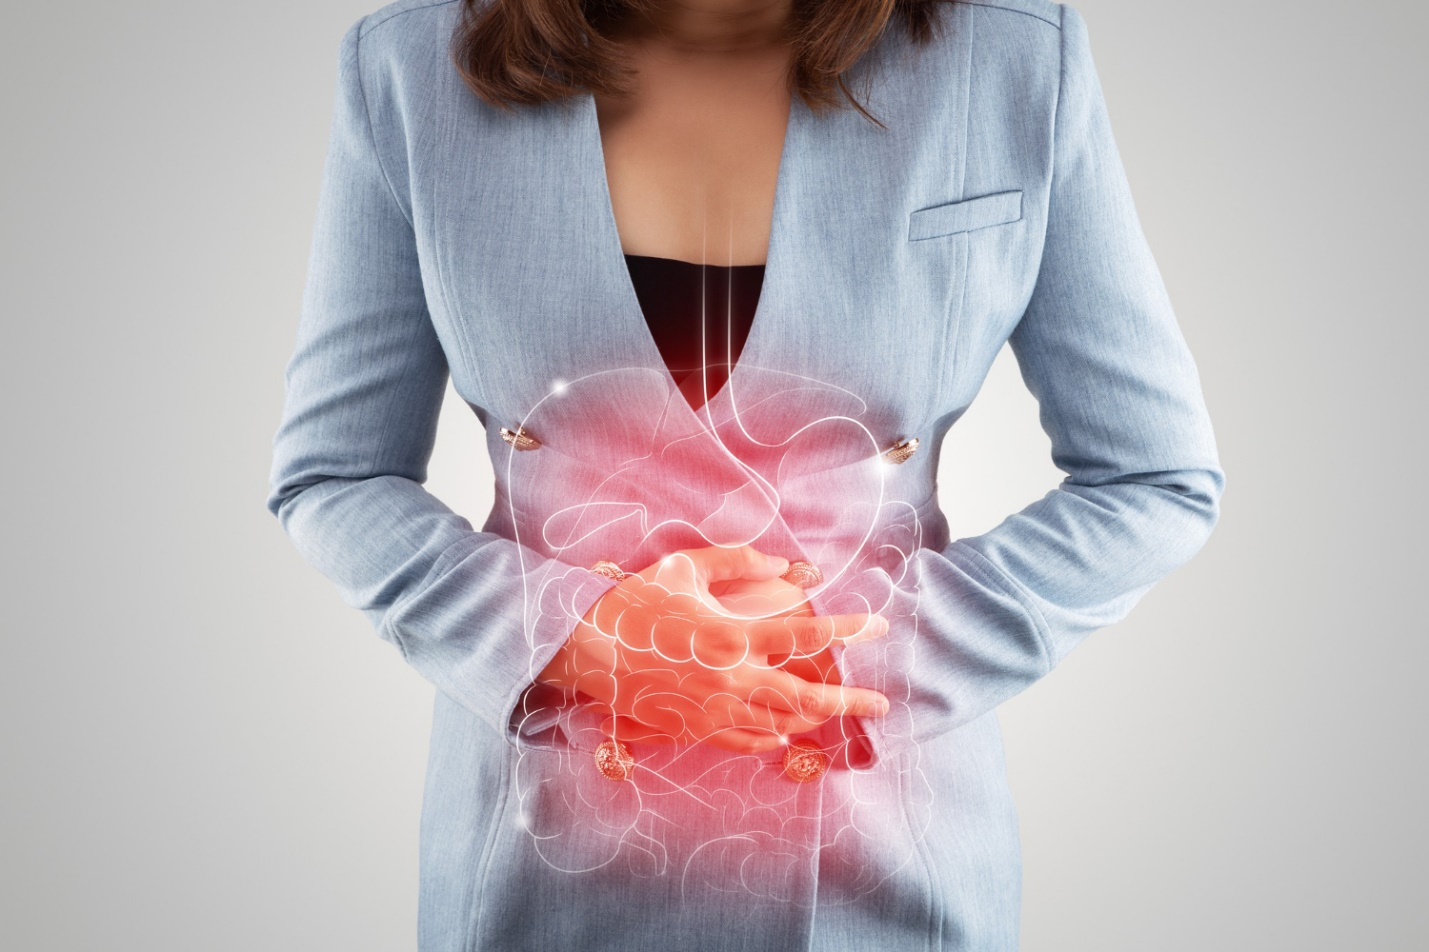 C:\Users\Dell\Downloads\illustration-internal-organs-is-woman-s-body-against-gray.jpg